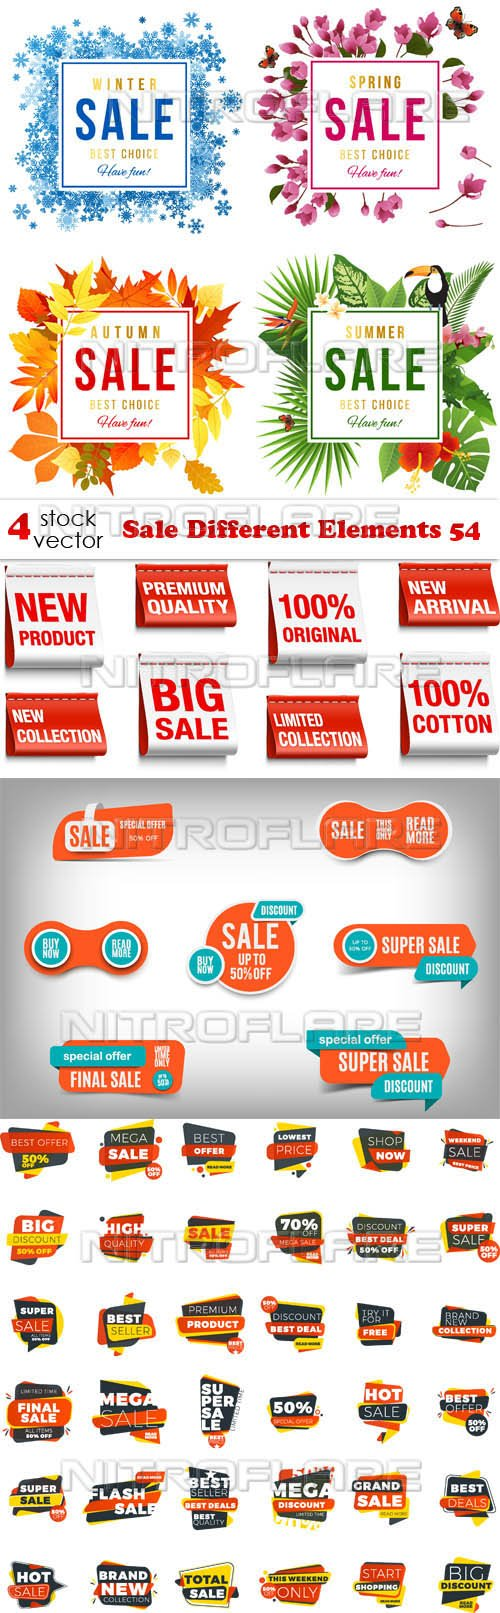 Vectors - Sale Different Elements 54